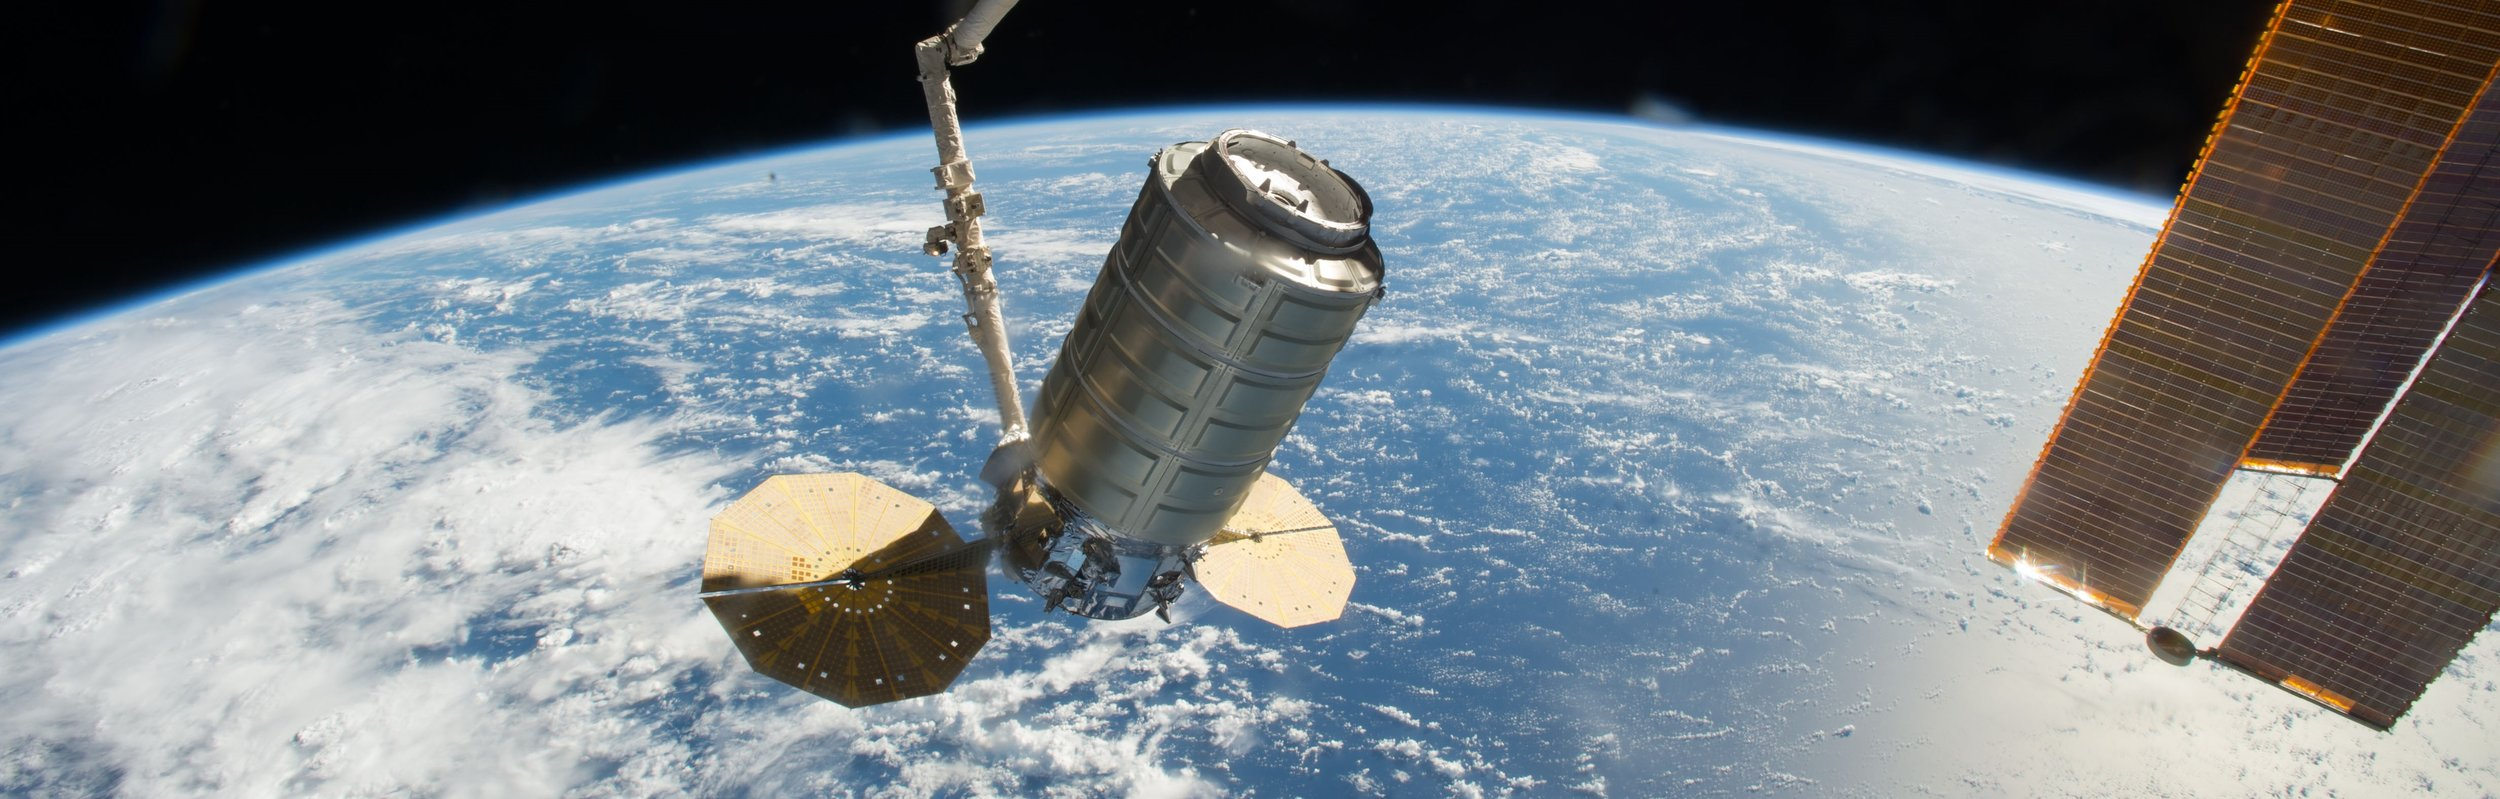 After months of delays, the OA-5 Cygnus finally arrives to the International Space Station. On Oct. 23, it was berthed to the Earth-facing port of the  Unity  module. Photo Credit: NASA